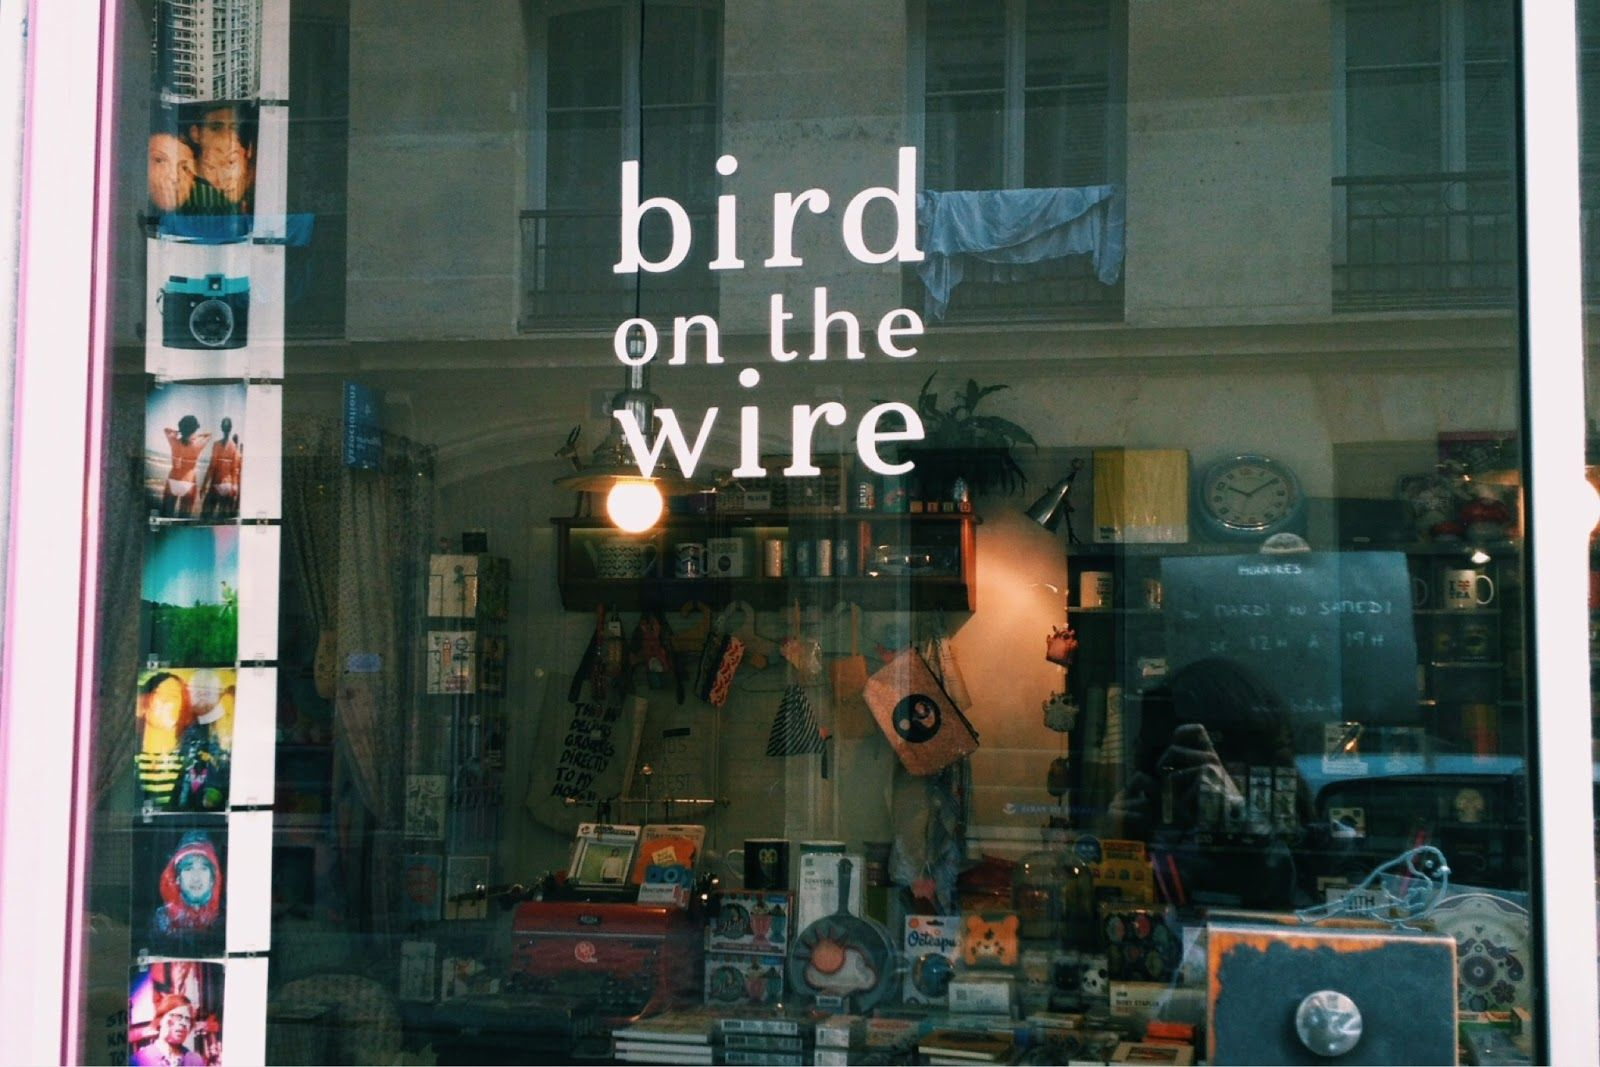 Boutique Bird On The Wire 2 Rue De Lesdiguieres 75004 Paris Du Mardi Au Samedi De 12h A 19h Paris Rue Boutique